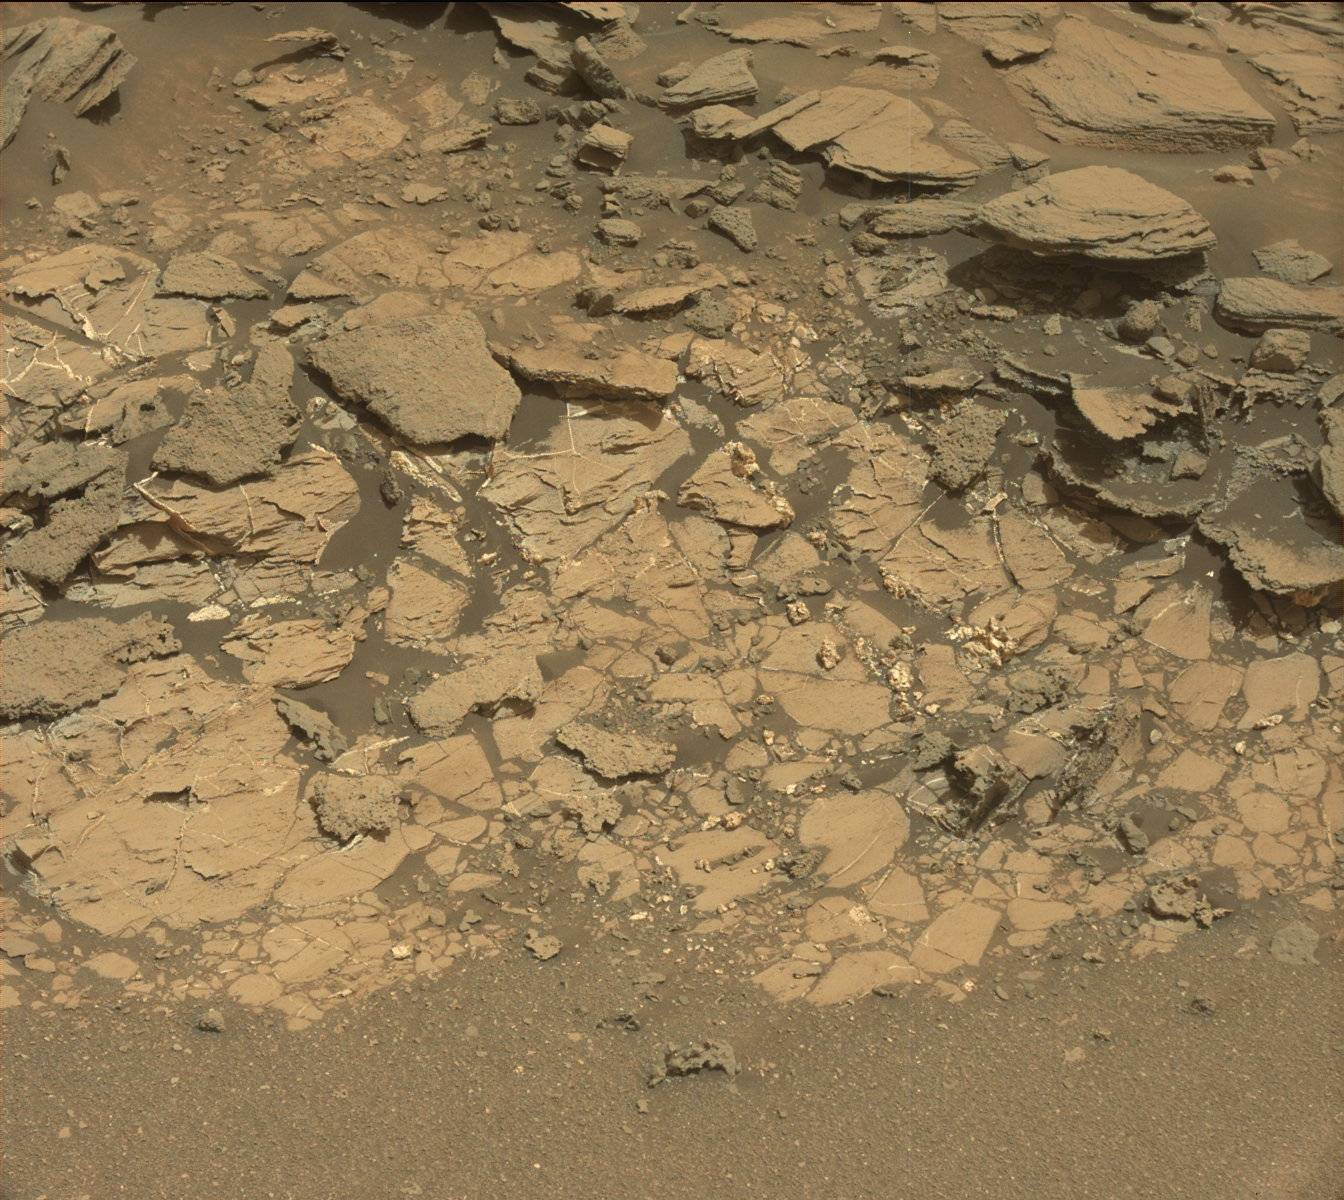 Sol 995 Pahrump Stimson contact